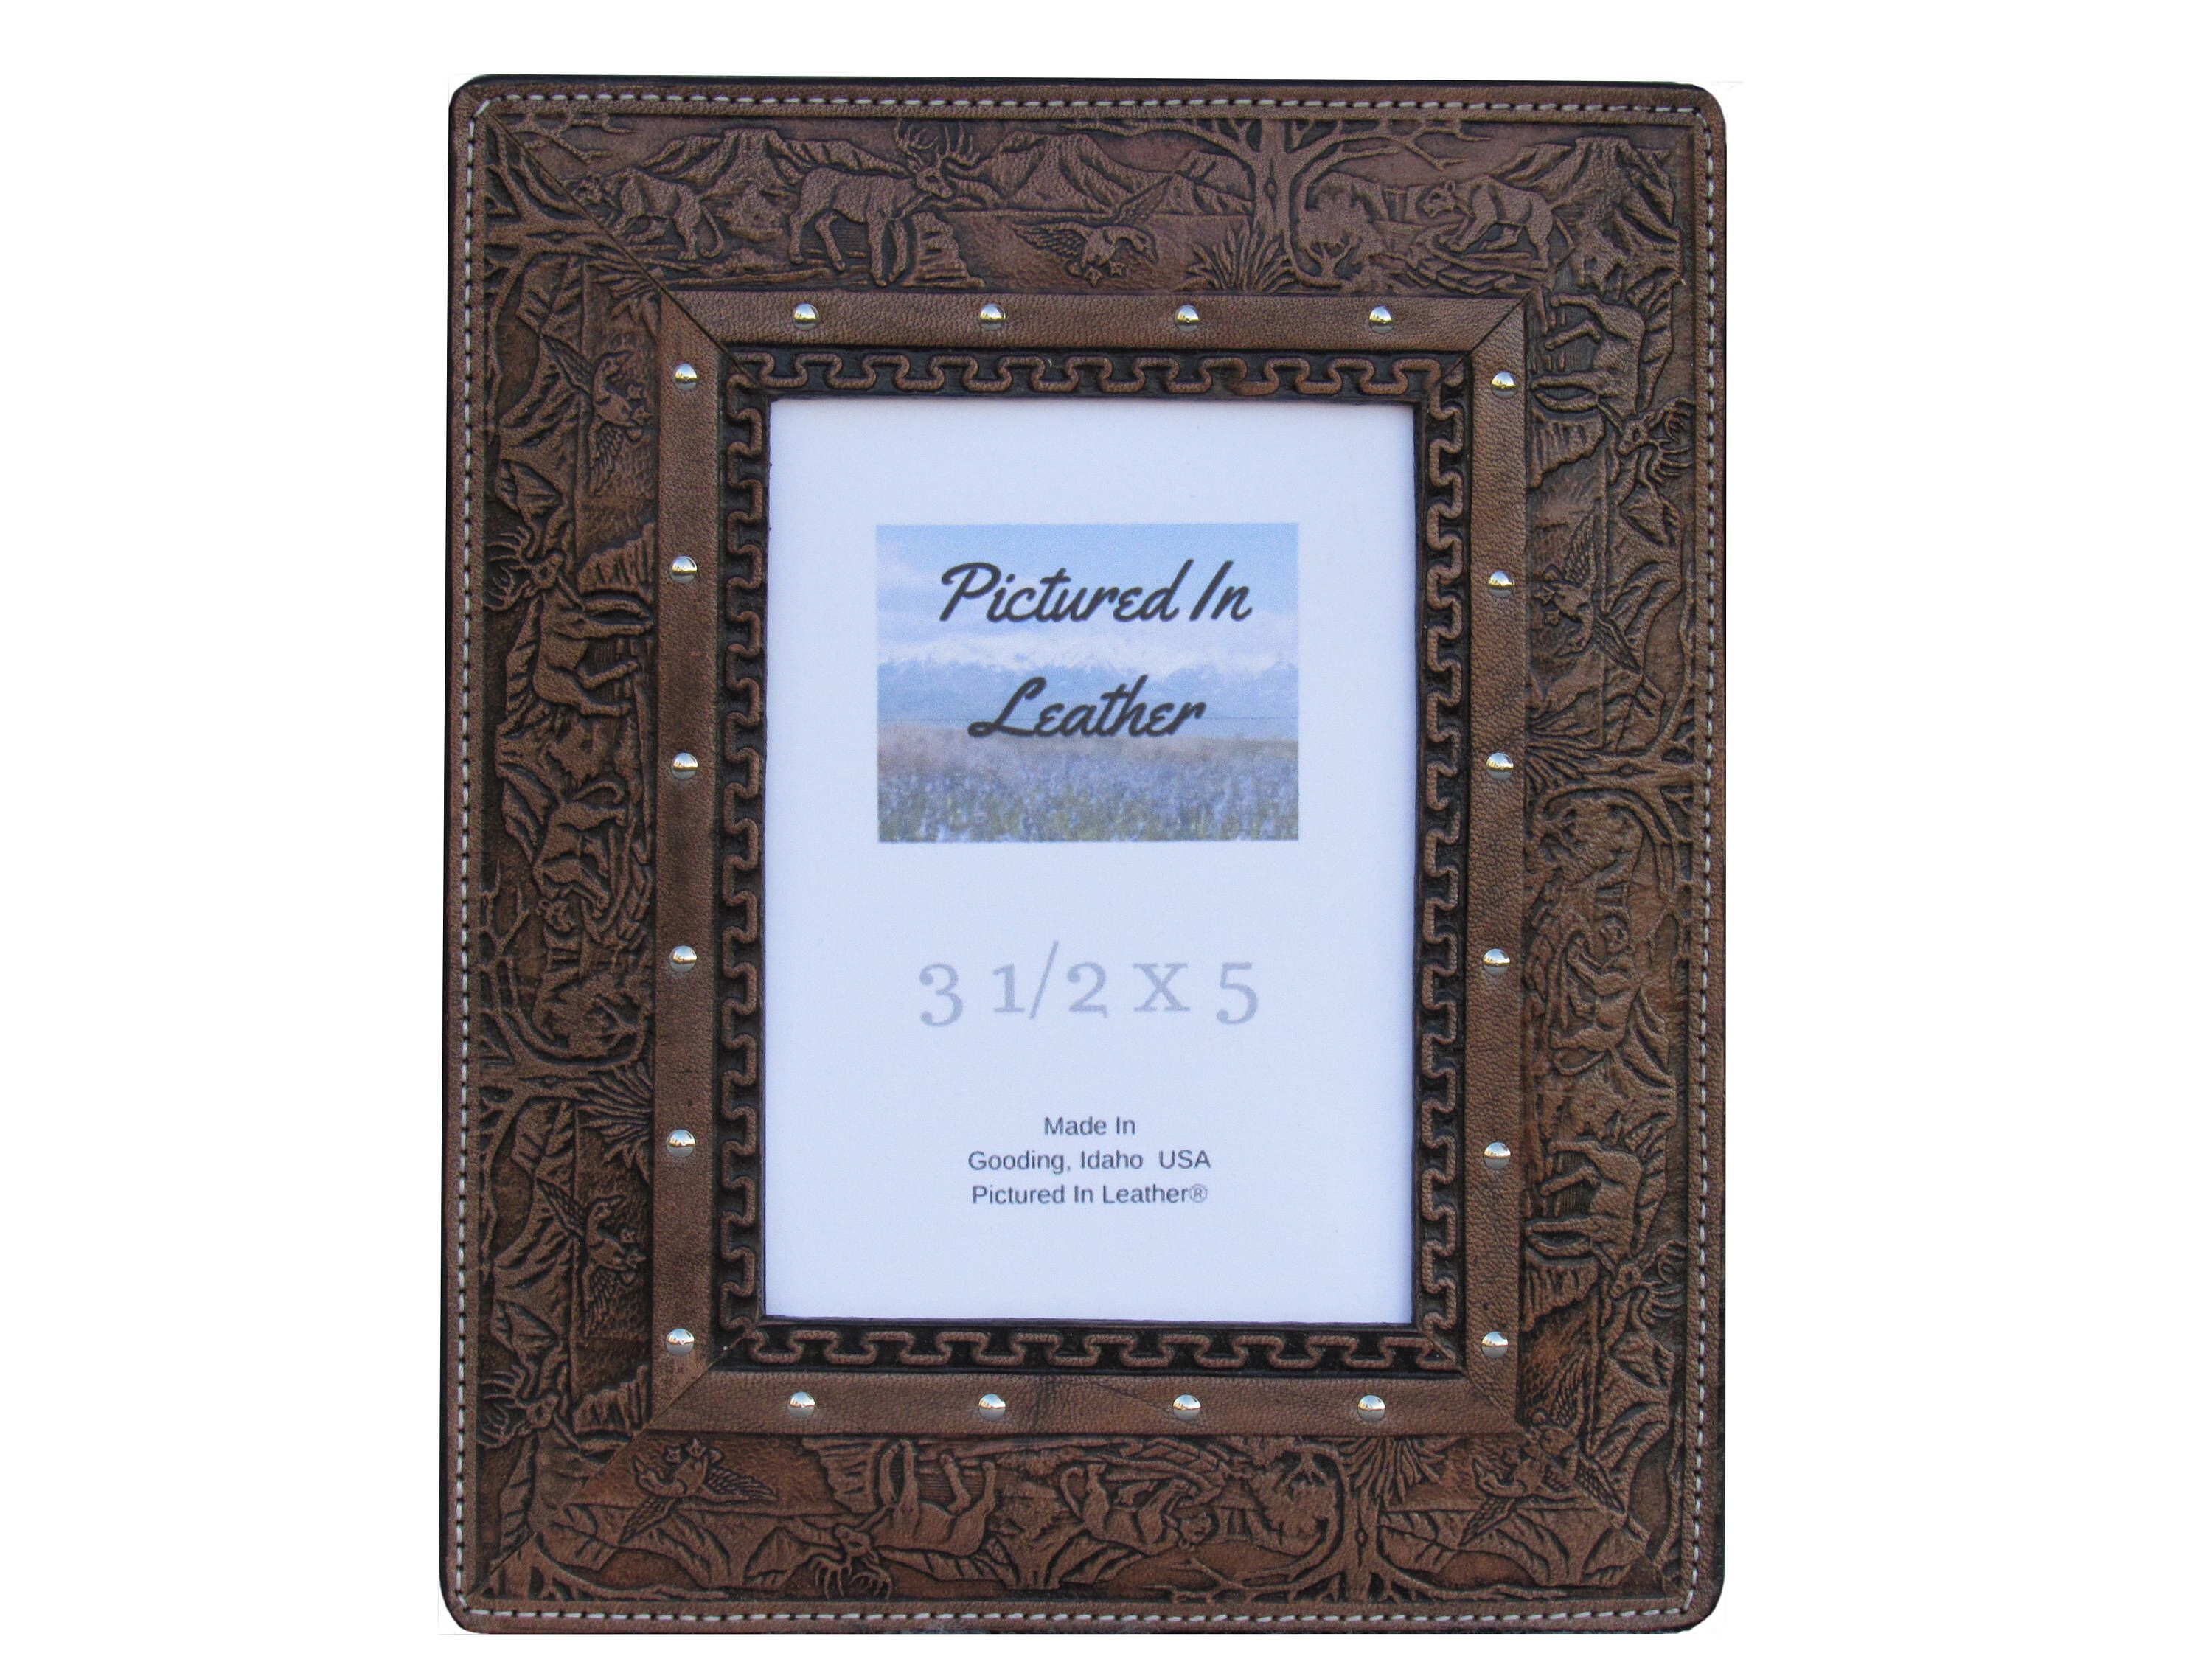 Christmas Gift For Men, Leather Photo Frame, 3 12X5, Wildlife